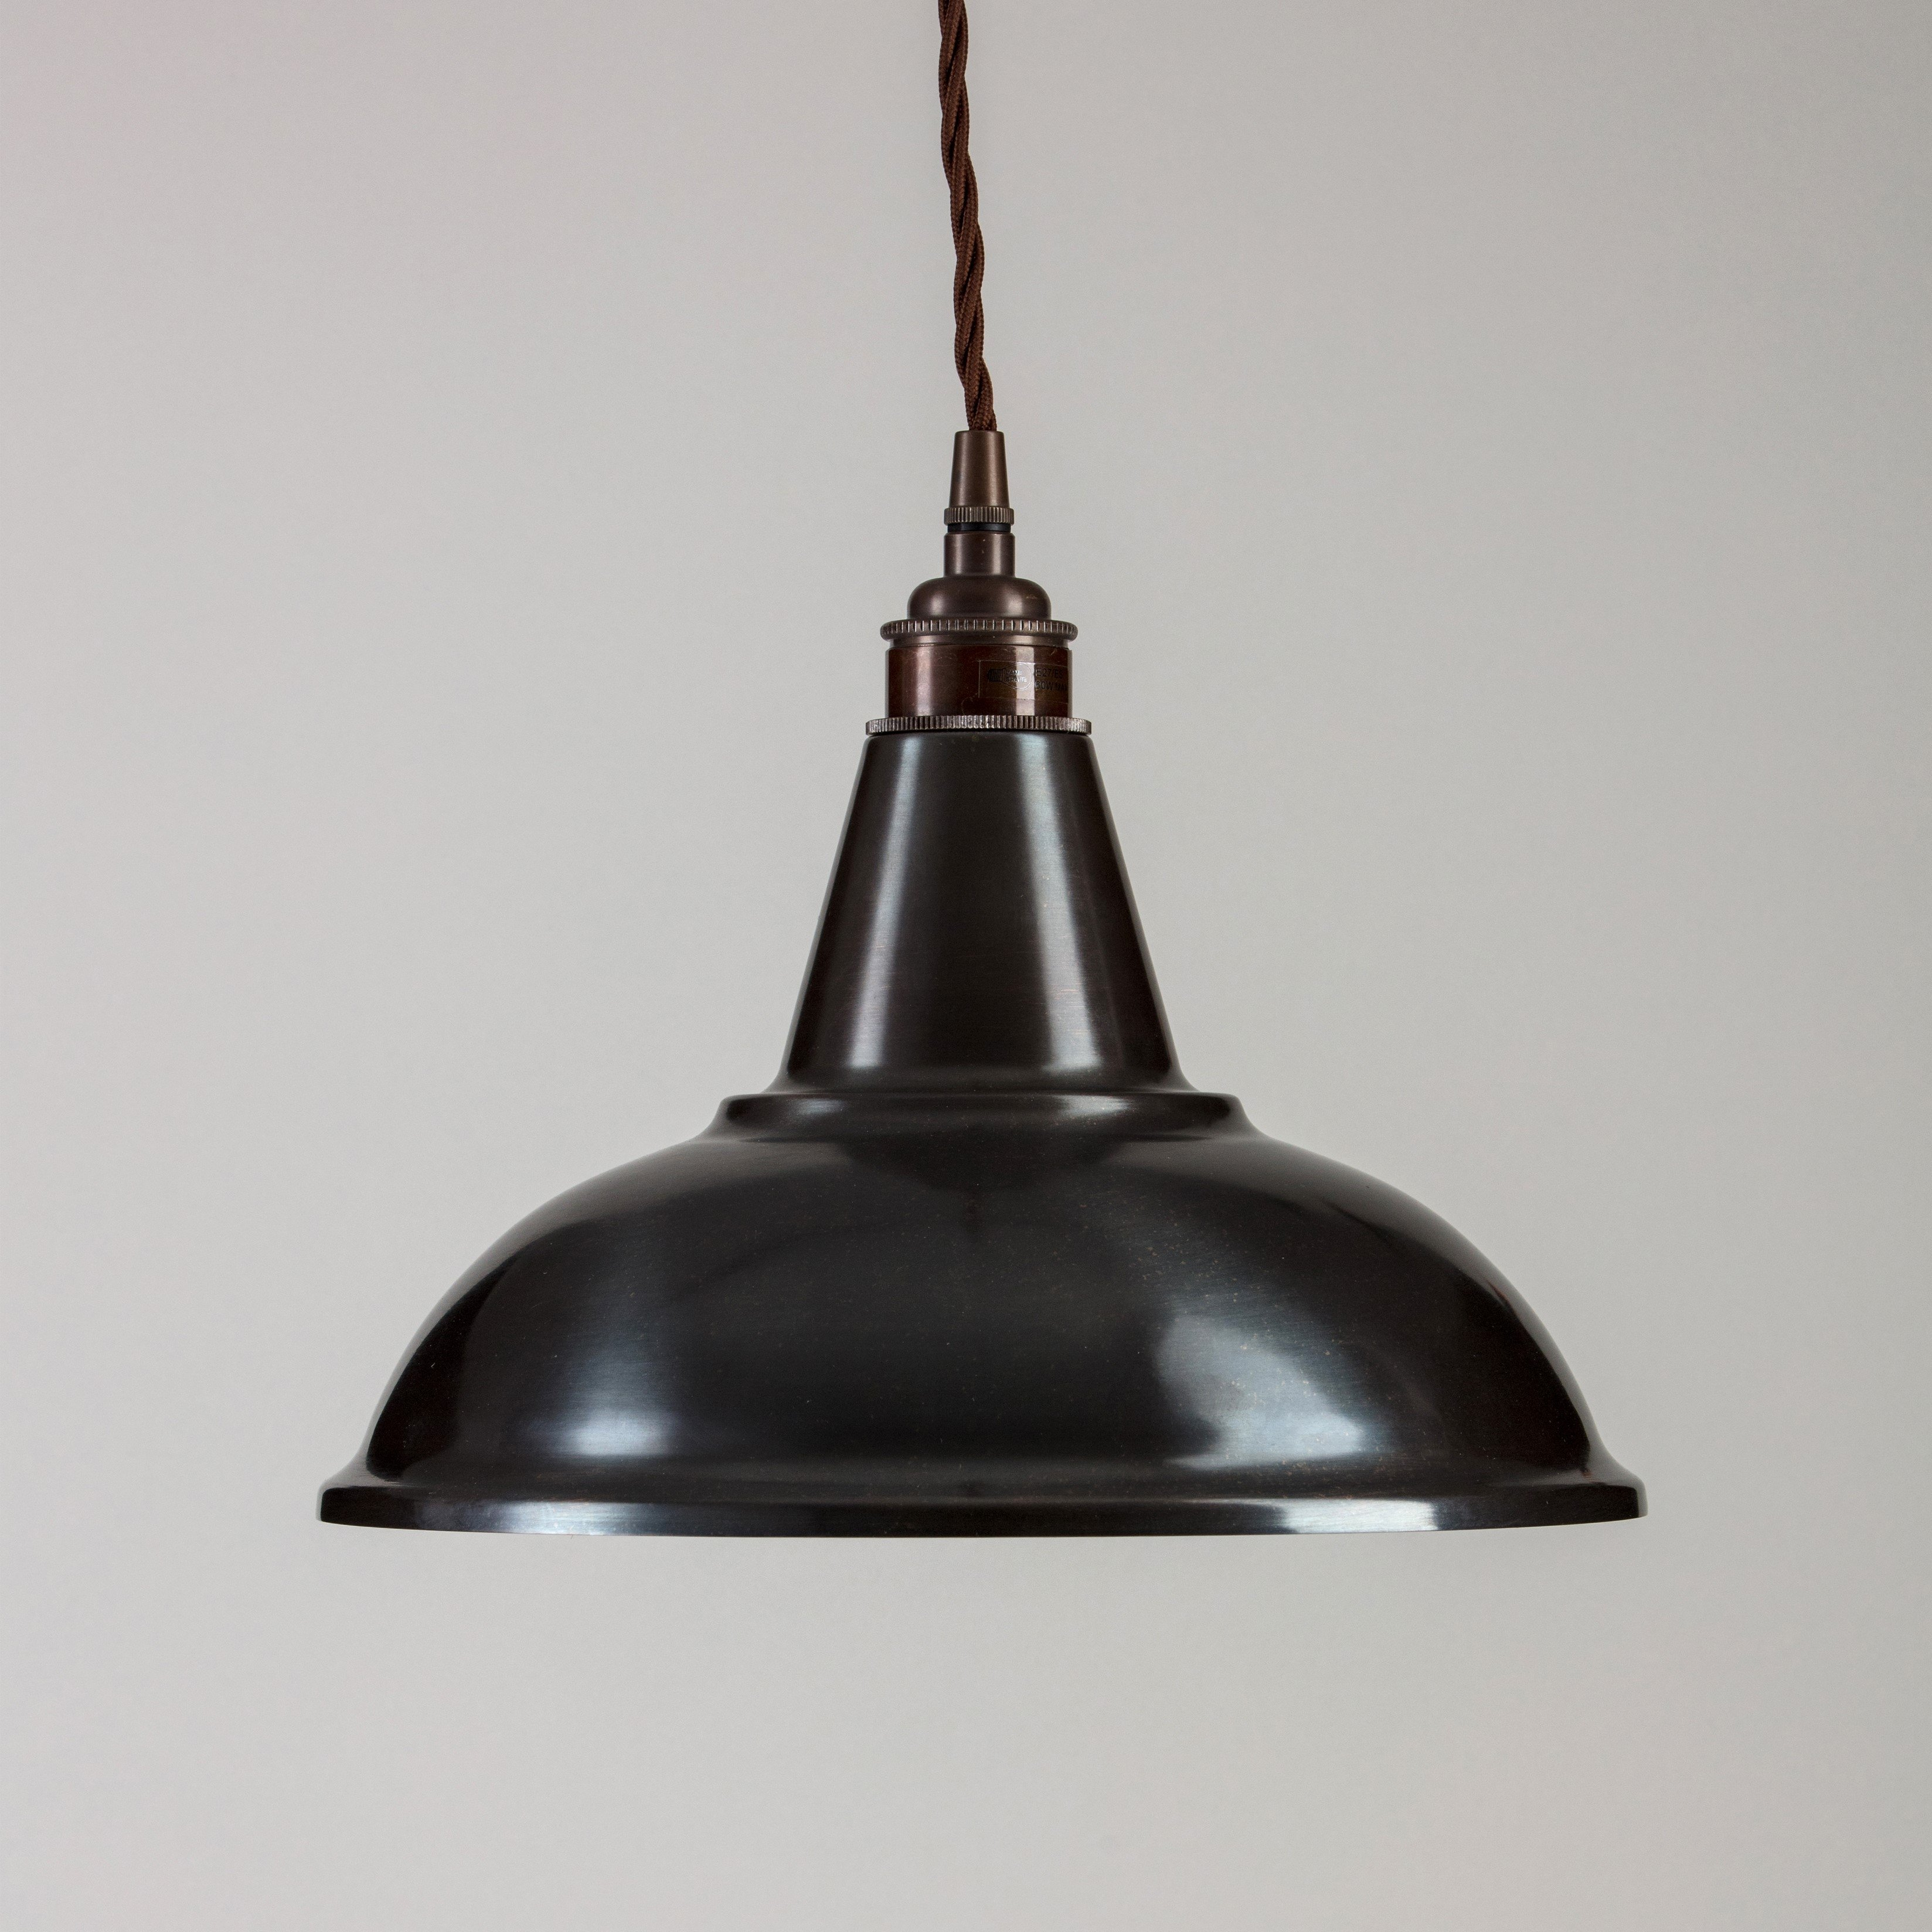 Factory Pendant Light - Raw Steel & Copper